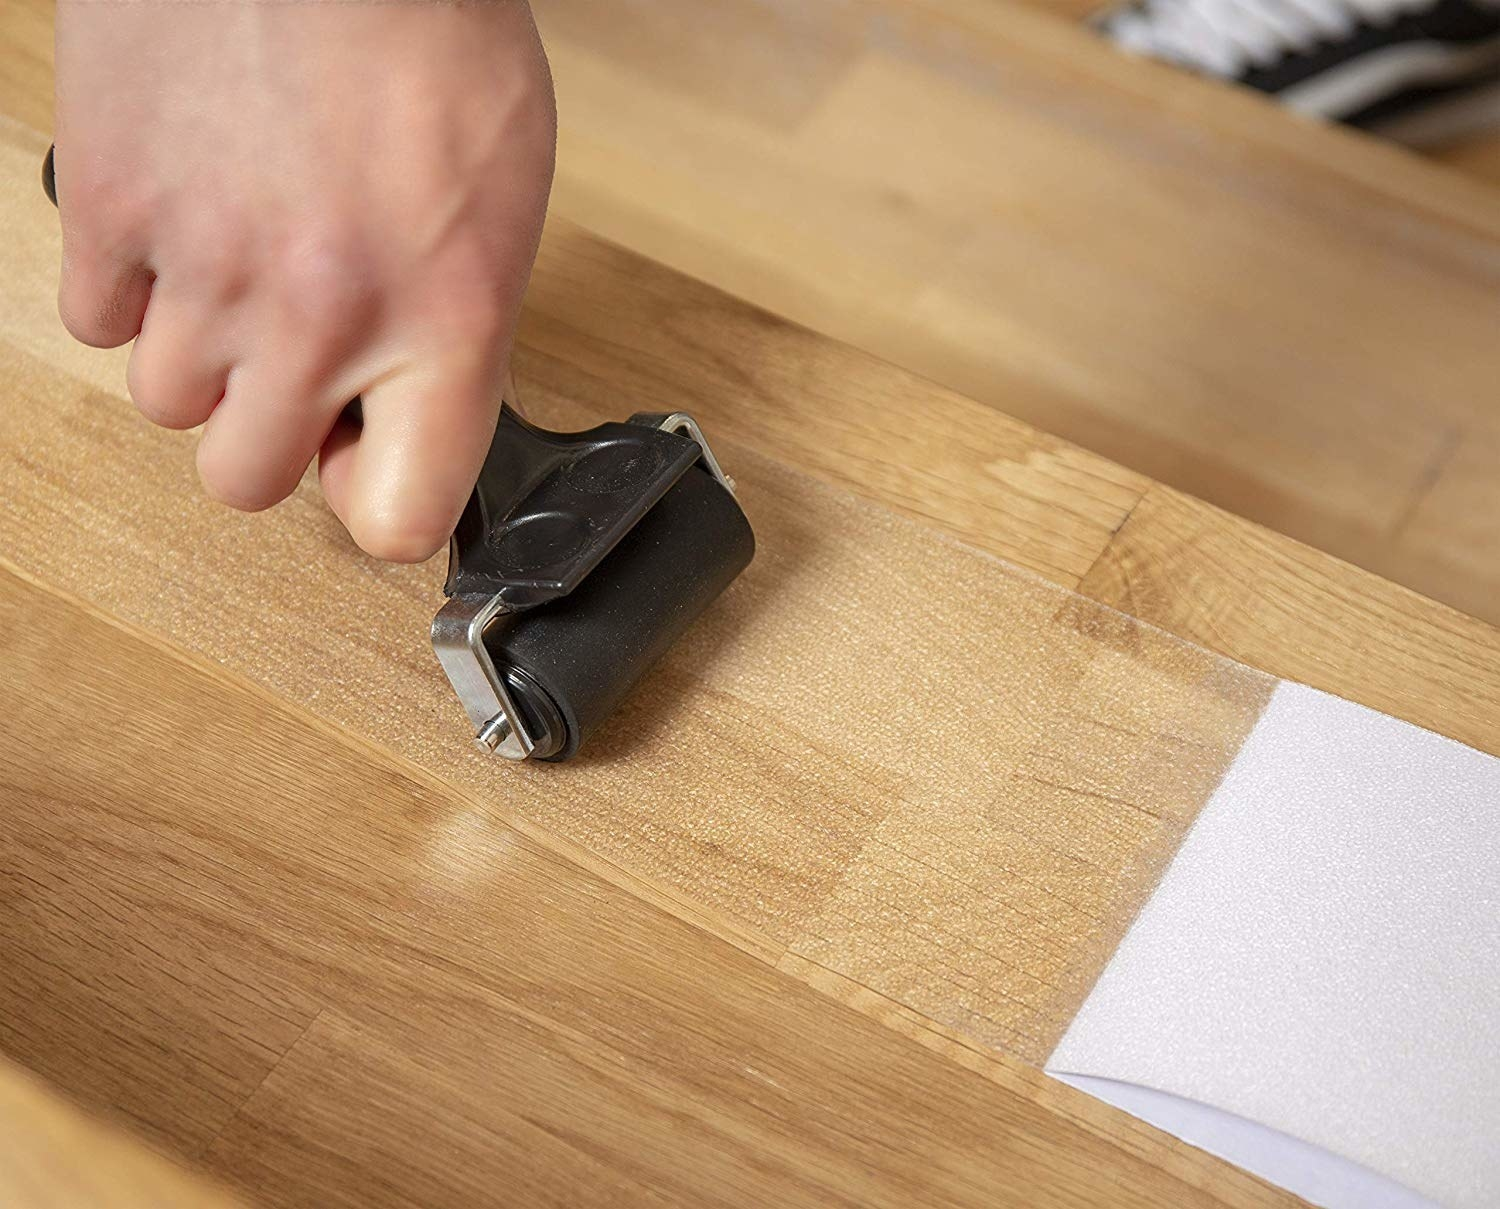 A hand rolls the transparent anti-slip tape across some wooden stairs